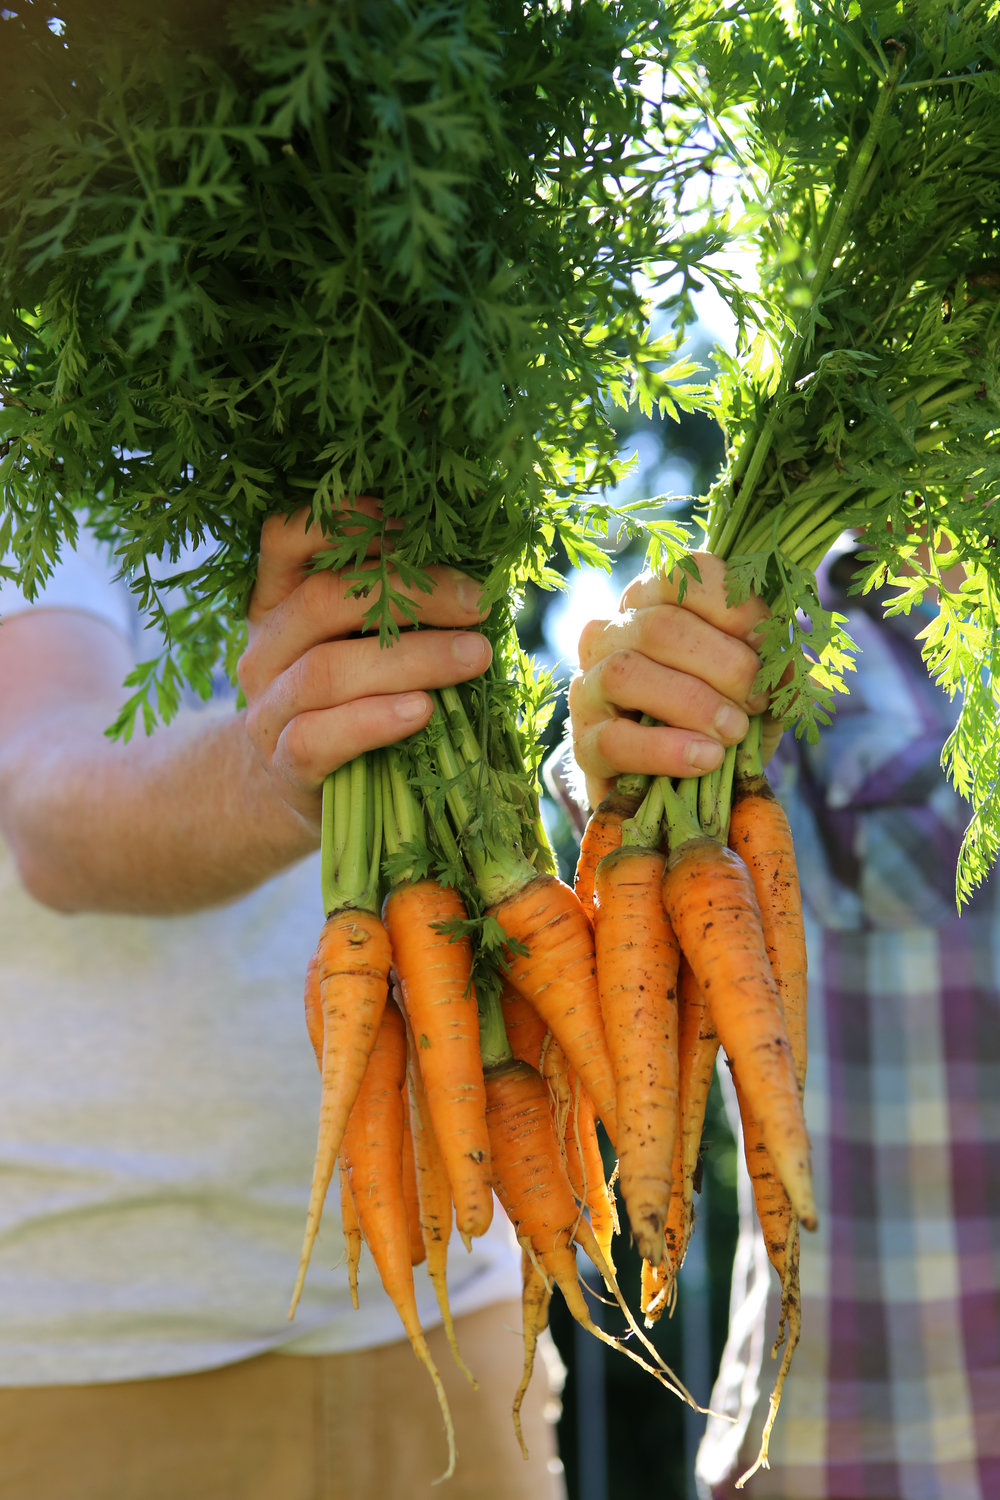 Carrots are hardy enough to withstand cooler temperatures, making them ideal to direct sow into your garden in early spring.